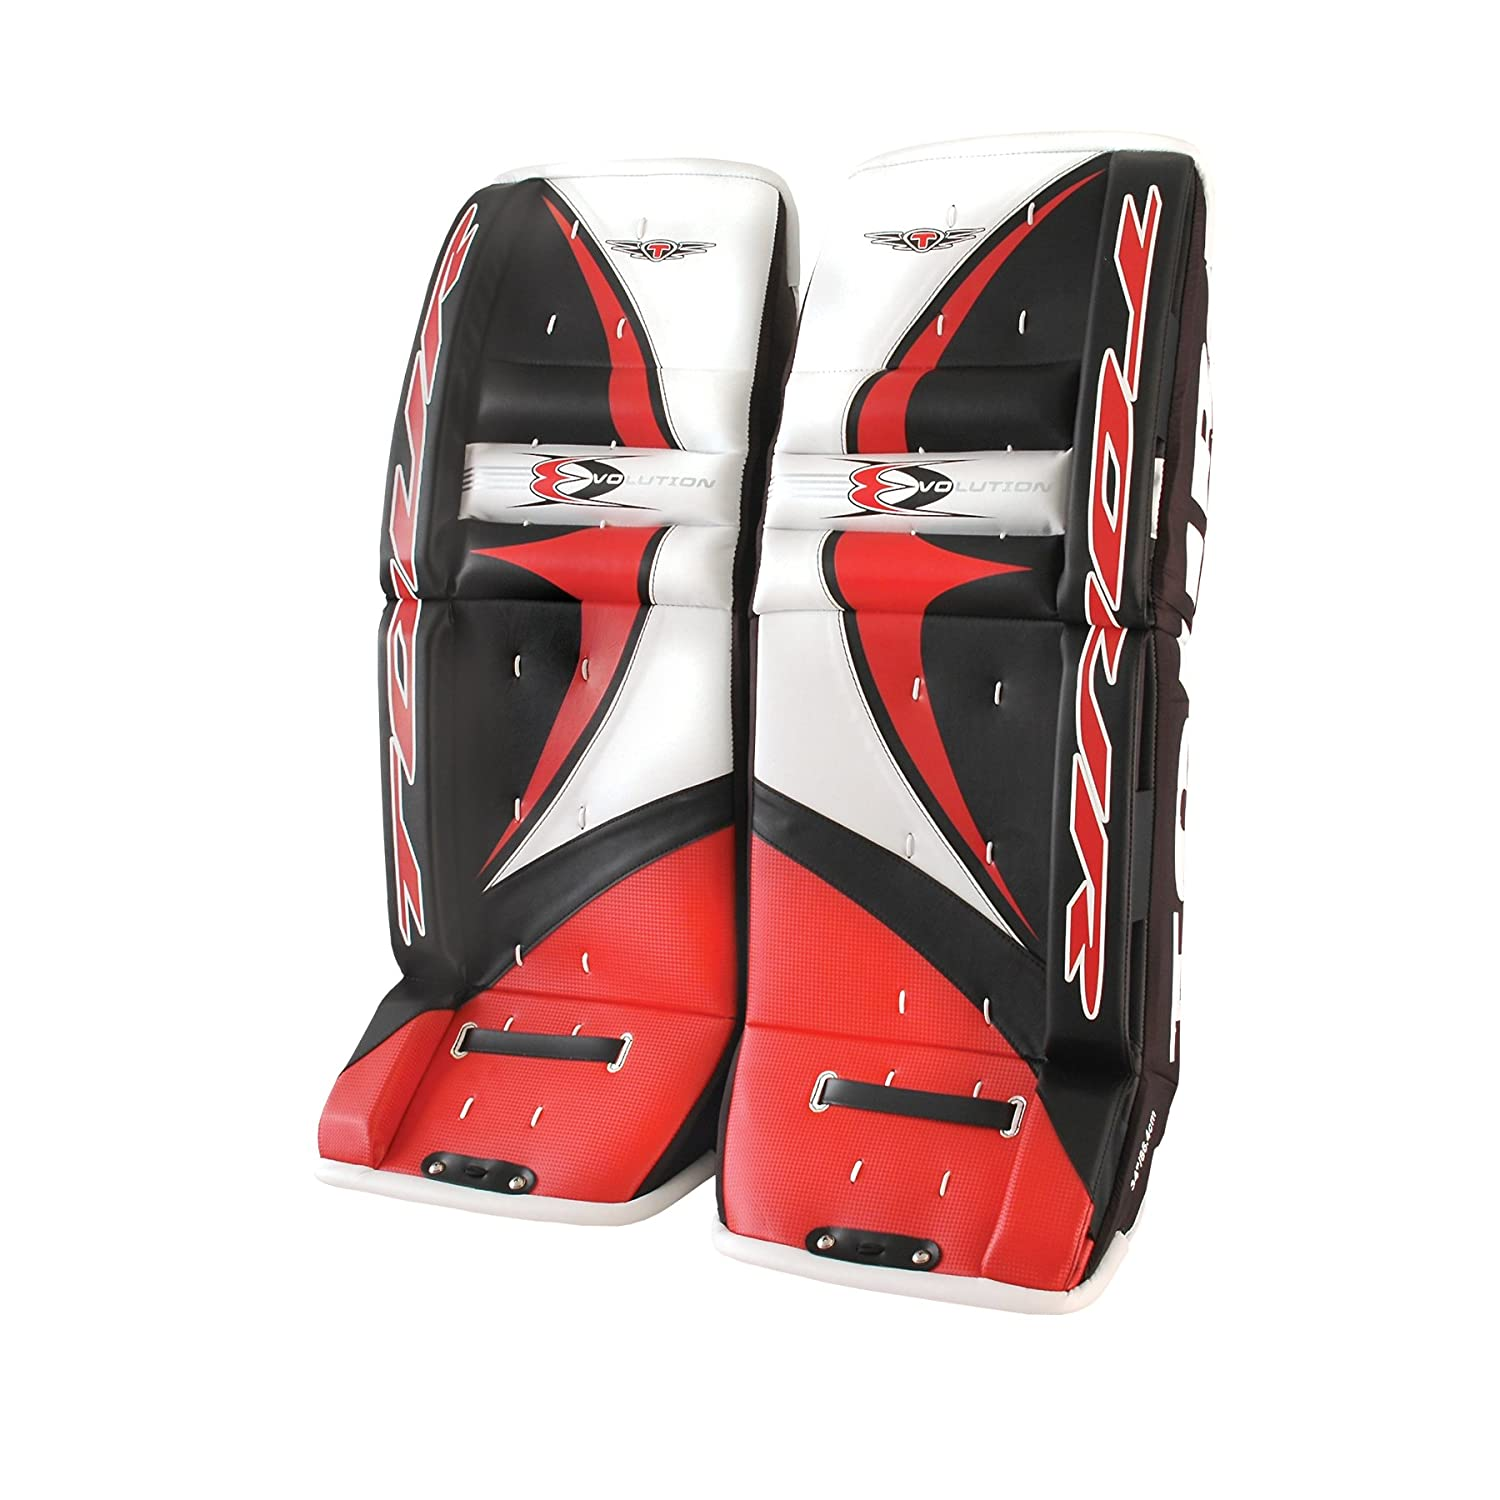 Tour EVO-6000 Youth Roller Hockey Goalie Pads